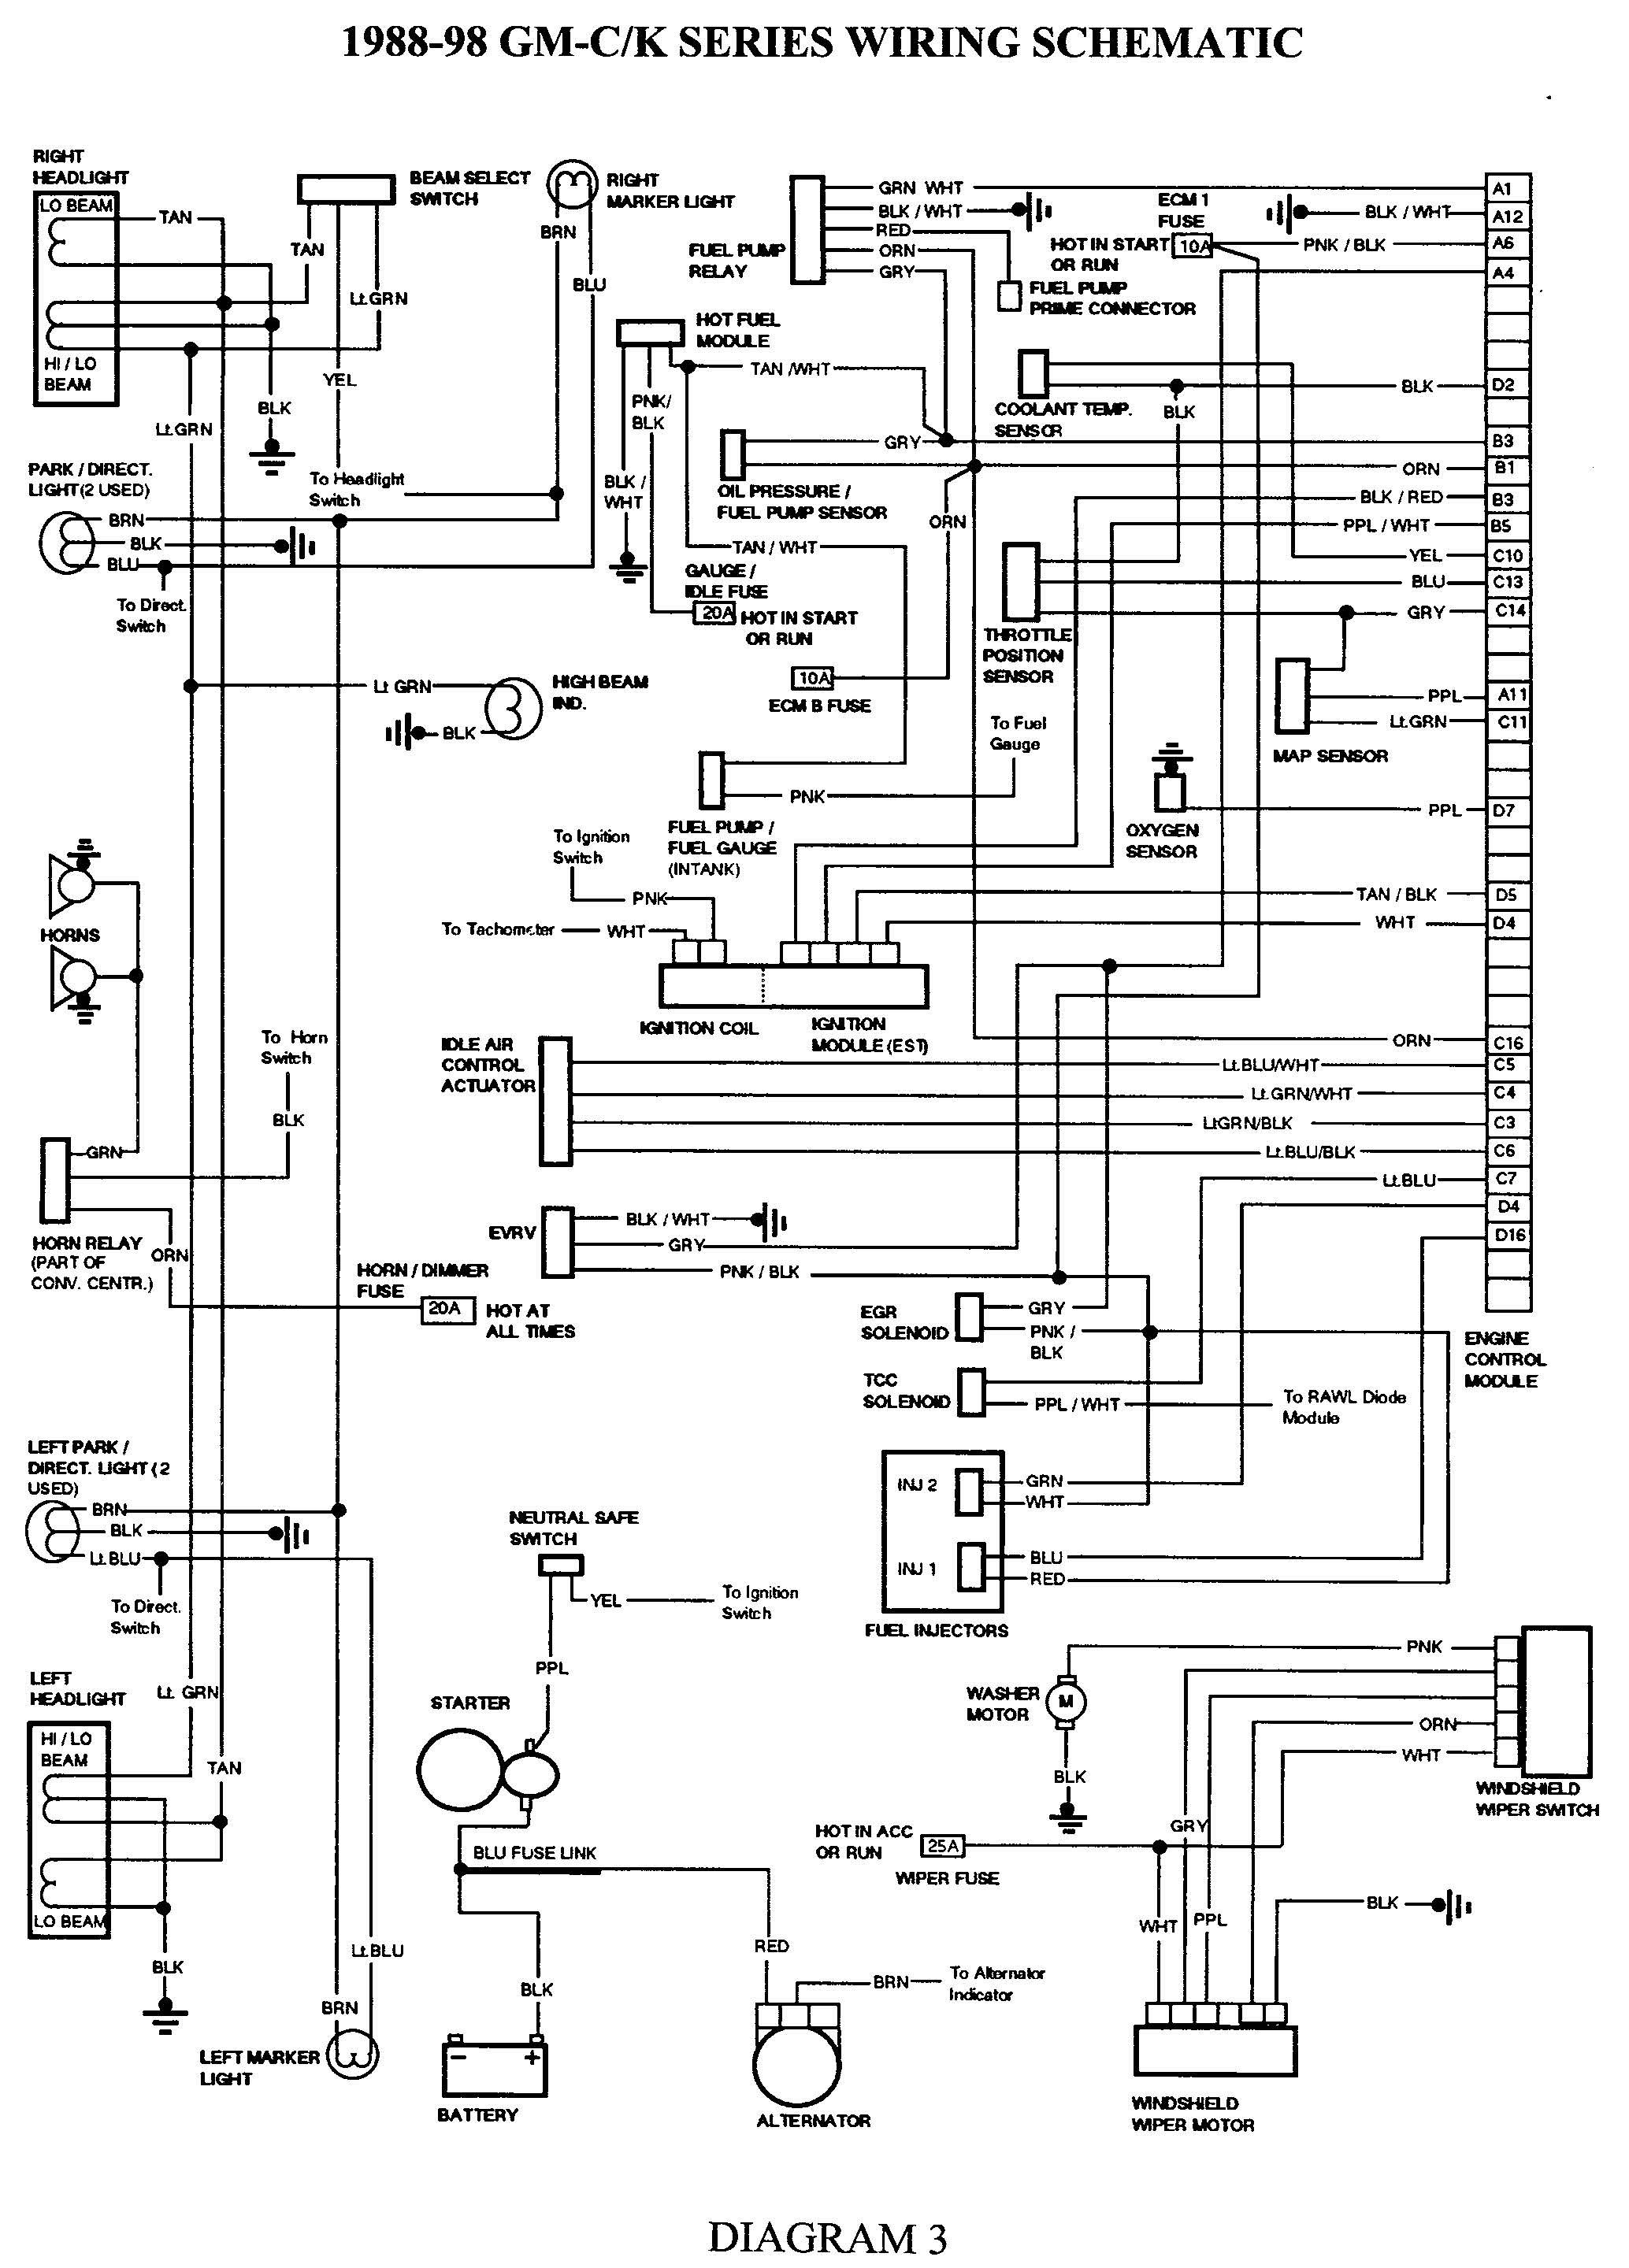 1986 chevrolet c10 57 v8 engine wiring diagram | Chevrolet C1500: got a 88 chevy with a 43l